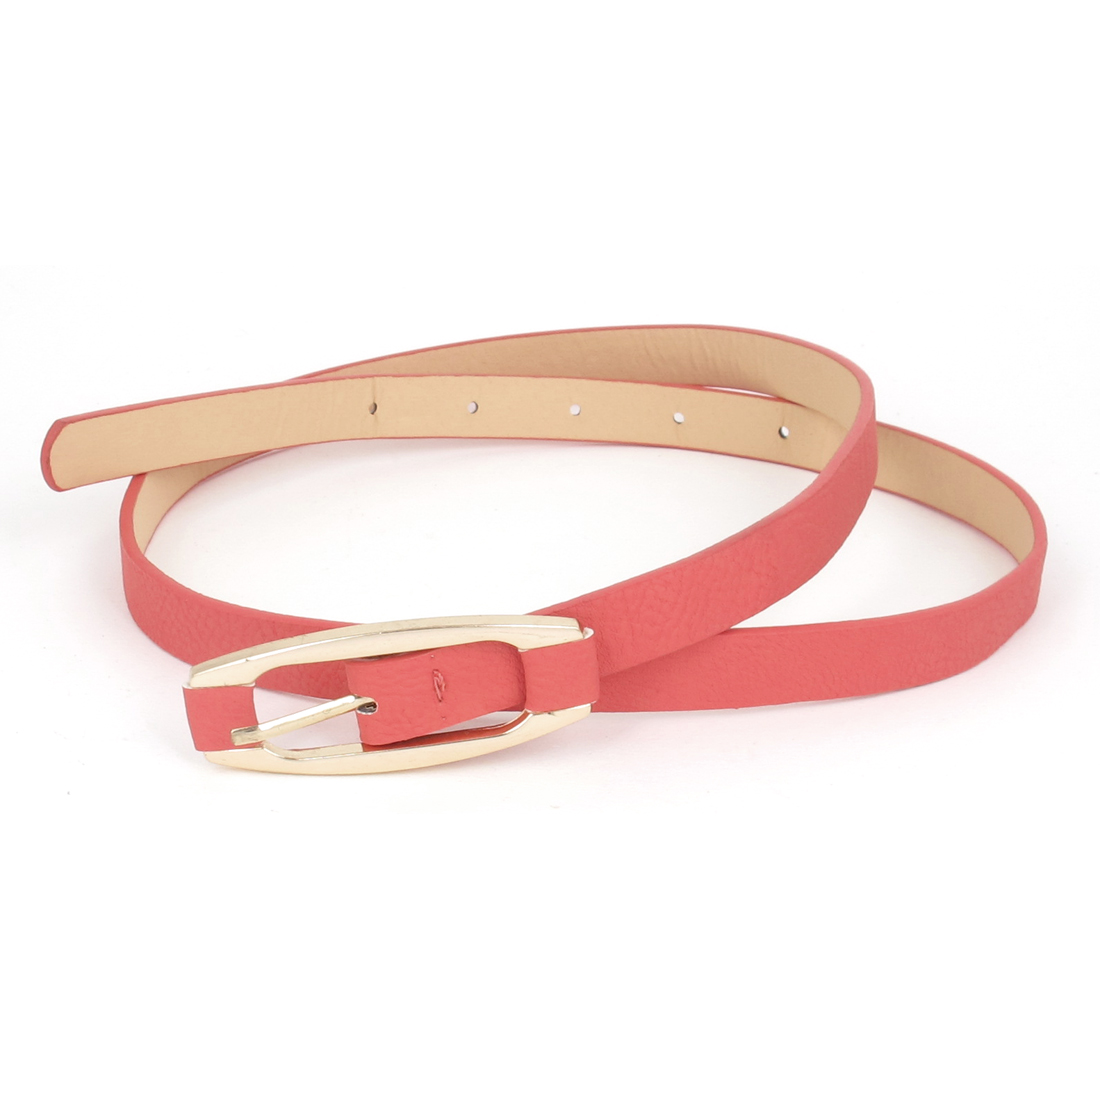 Lady Metal Single Pin Buckle 5 Holes Design Perforated Faux Leather Waist Belt Waistbelt Watermelon Red